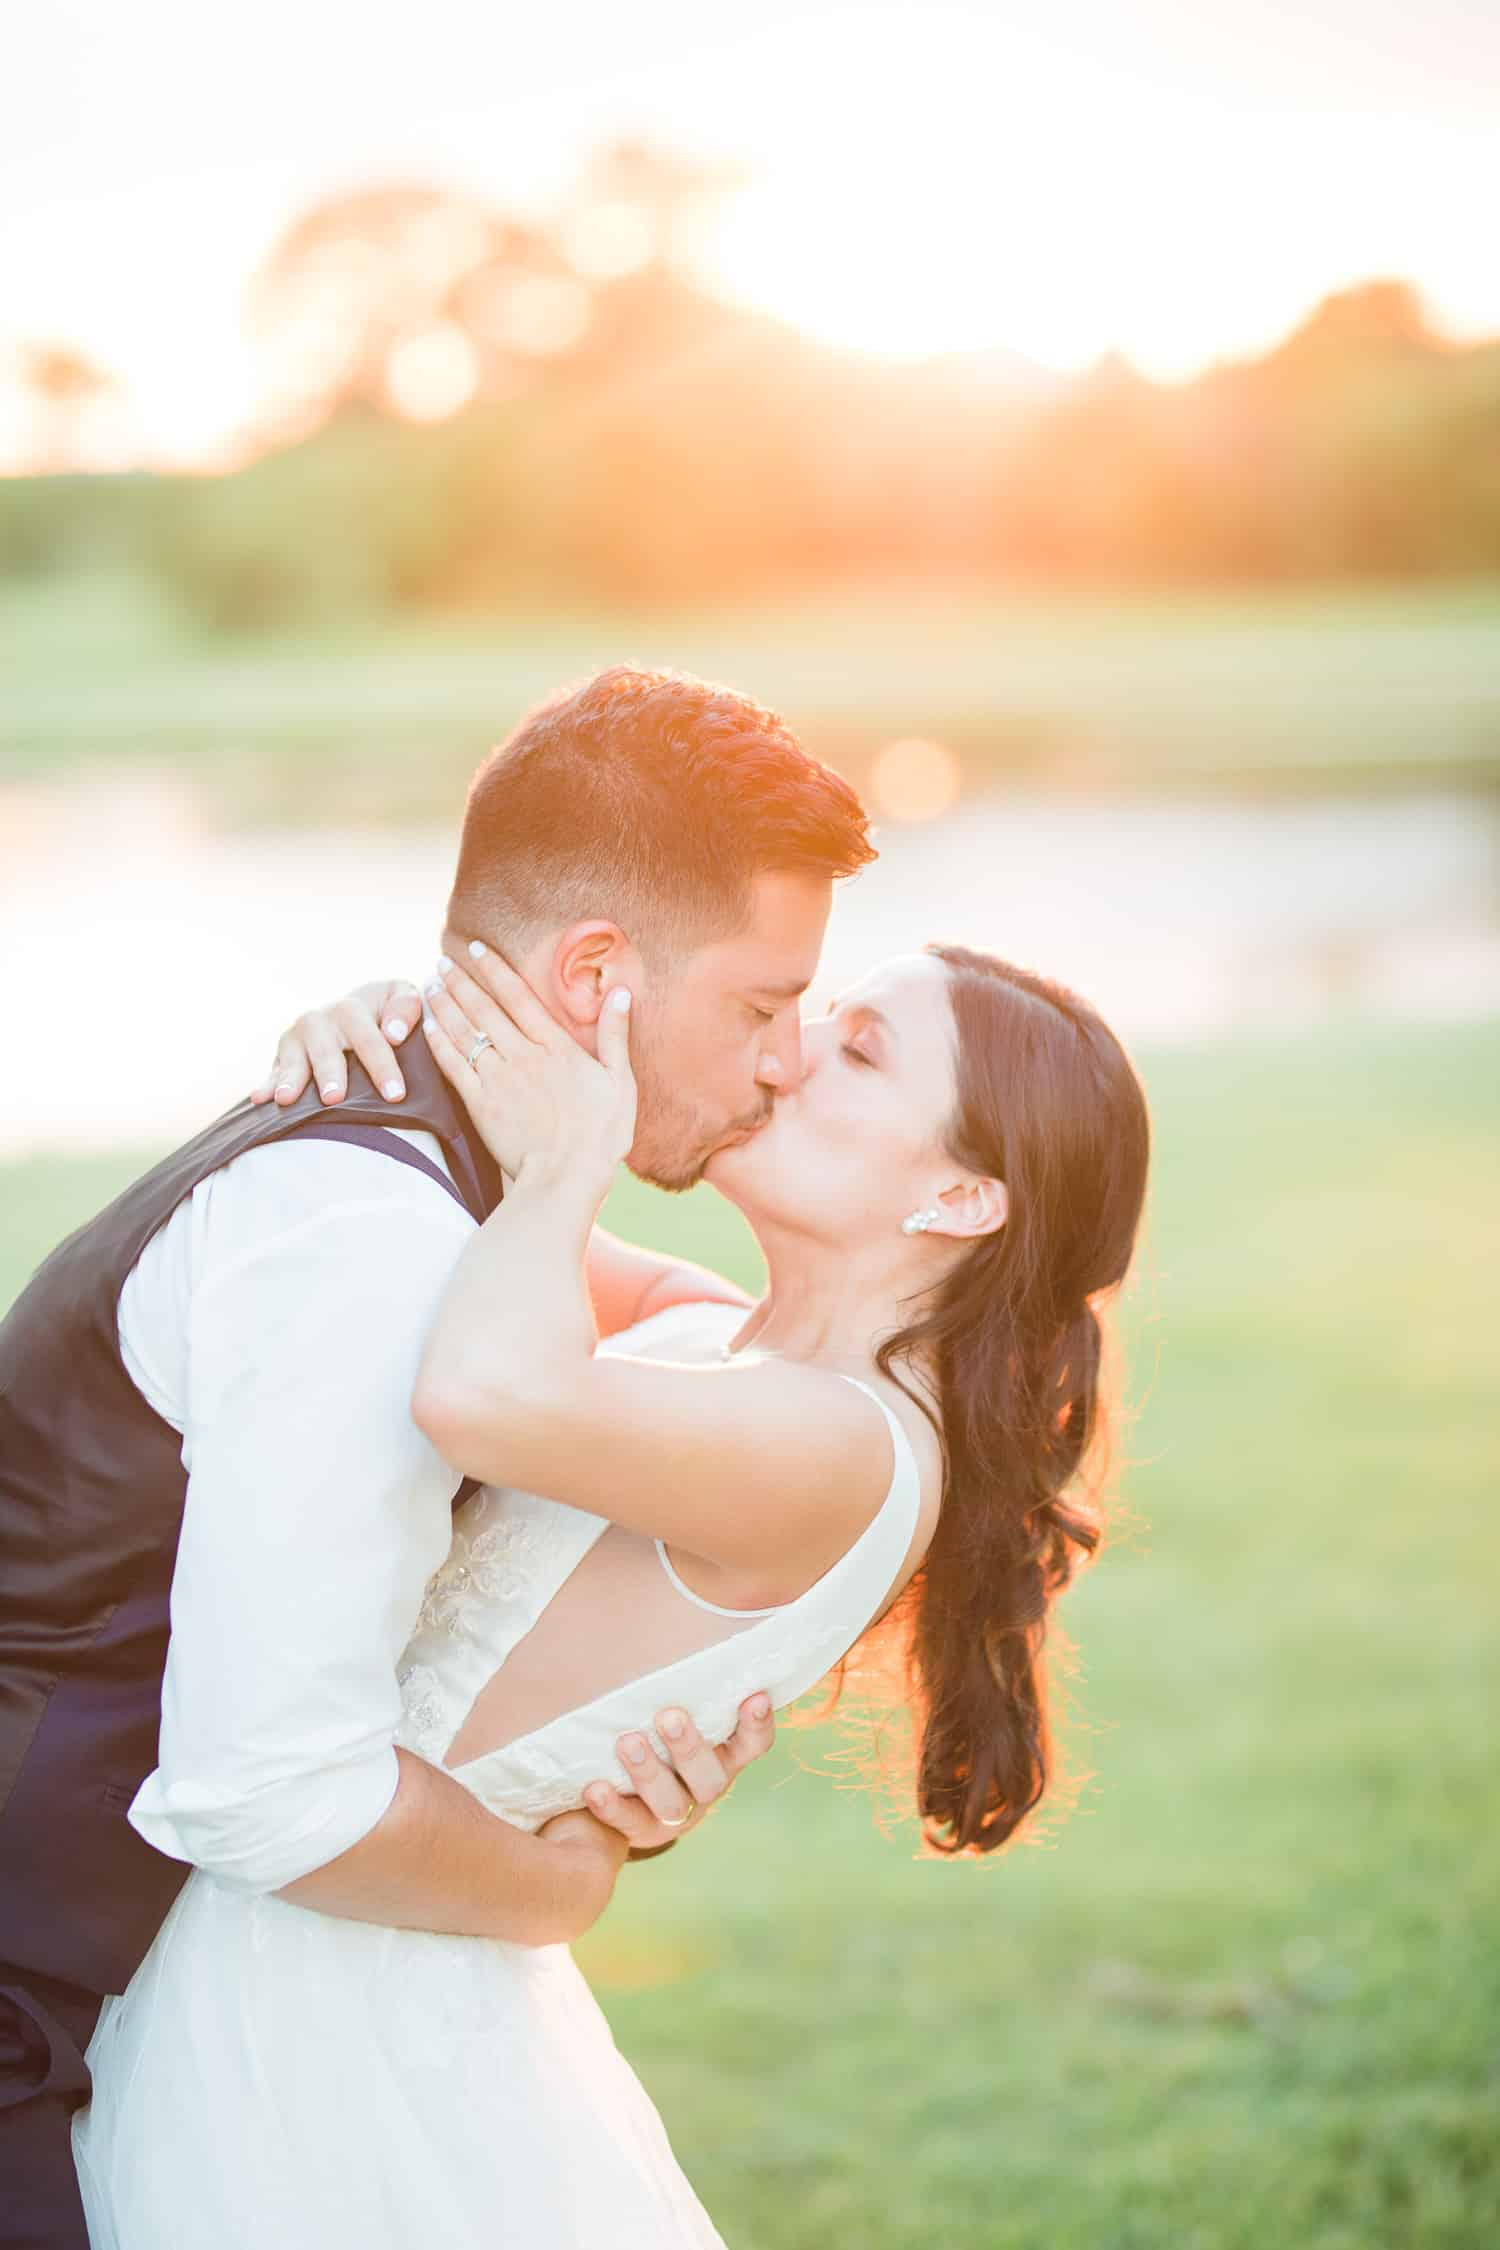 Beautiful sunset image featuring a bride and groom at Cider Hill Family Orchard by Kansas City wedding photographer